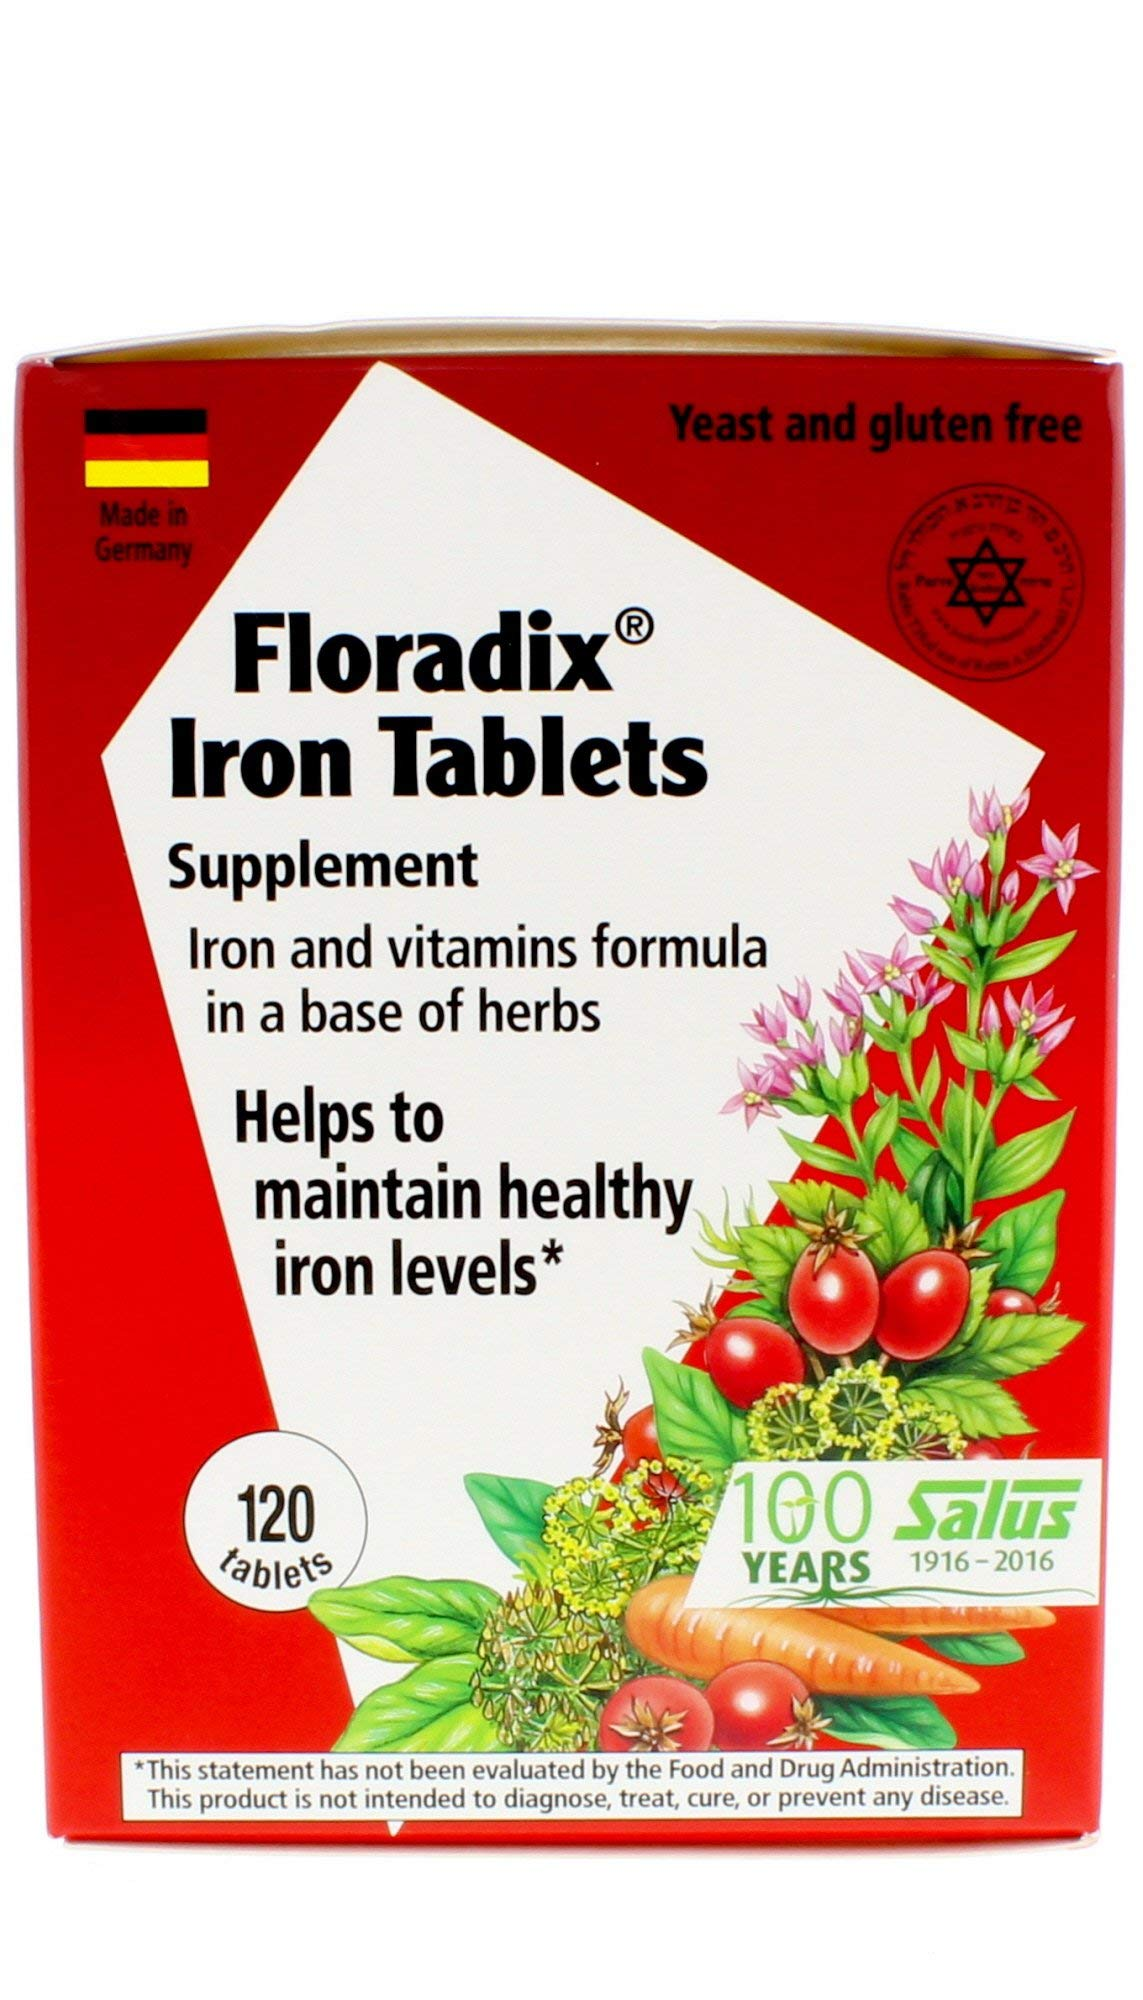 FLORA - Floradix Iron Tablets, Vegetarian, Tablet, by Salus, 120 Count